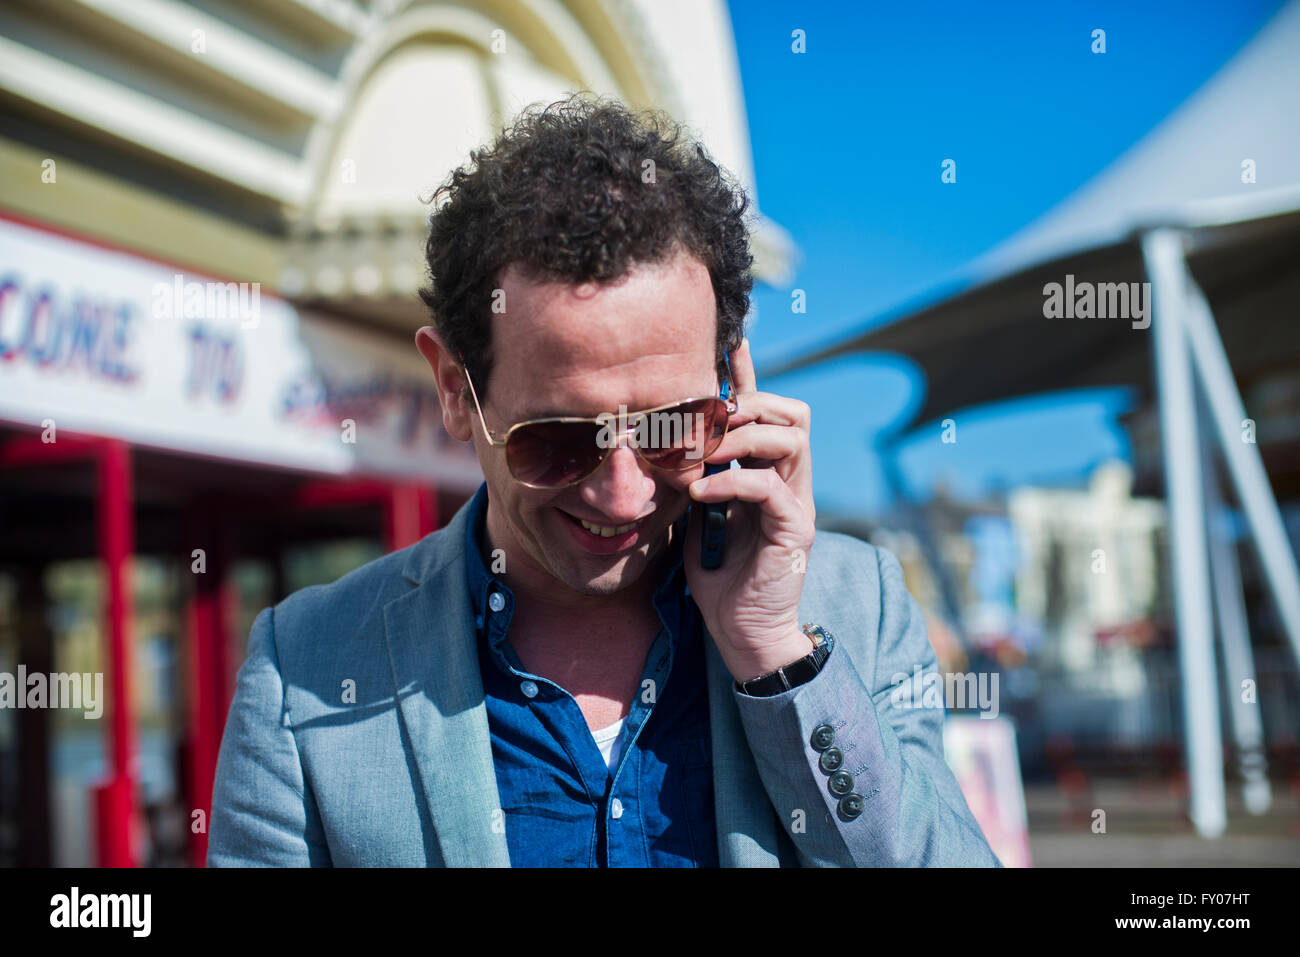 a man talking on his phone and smiling on a sunny day Stock Photo